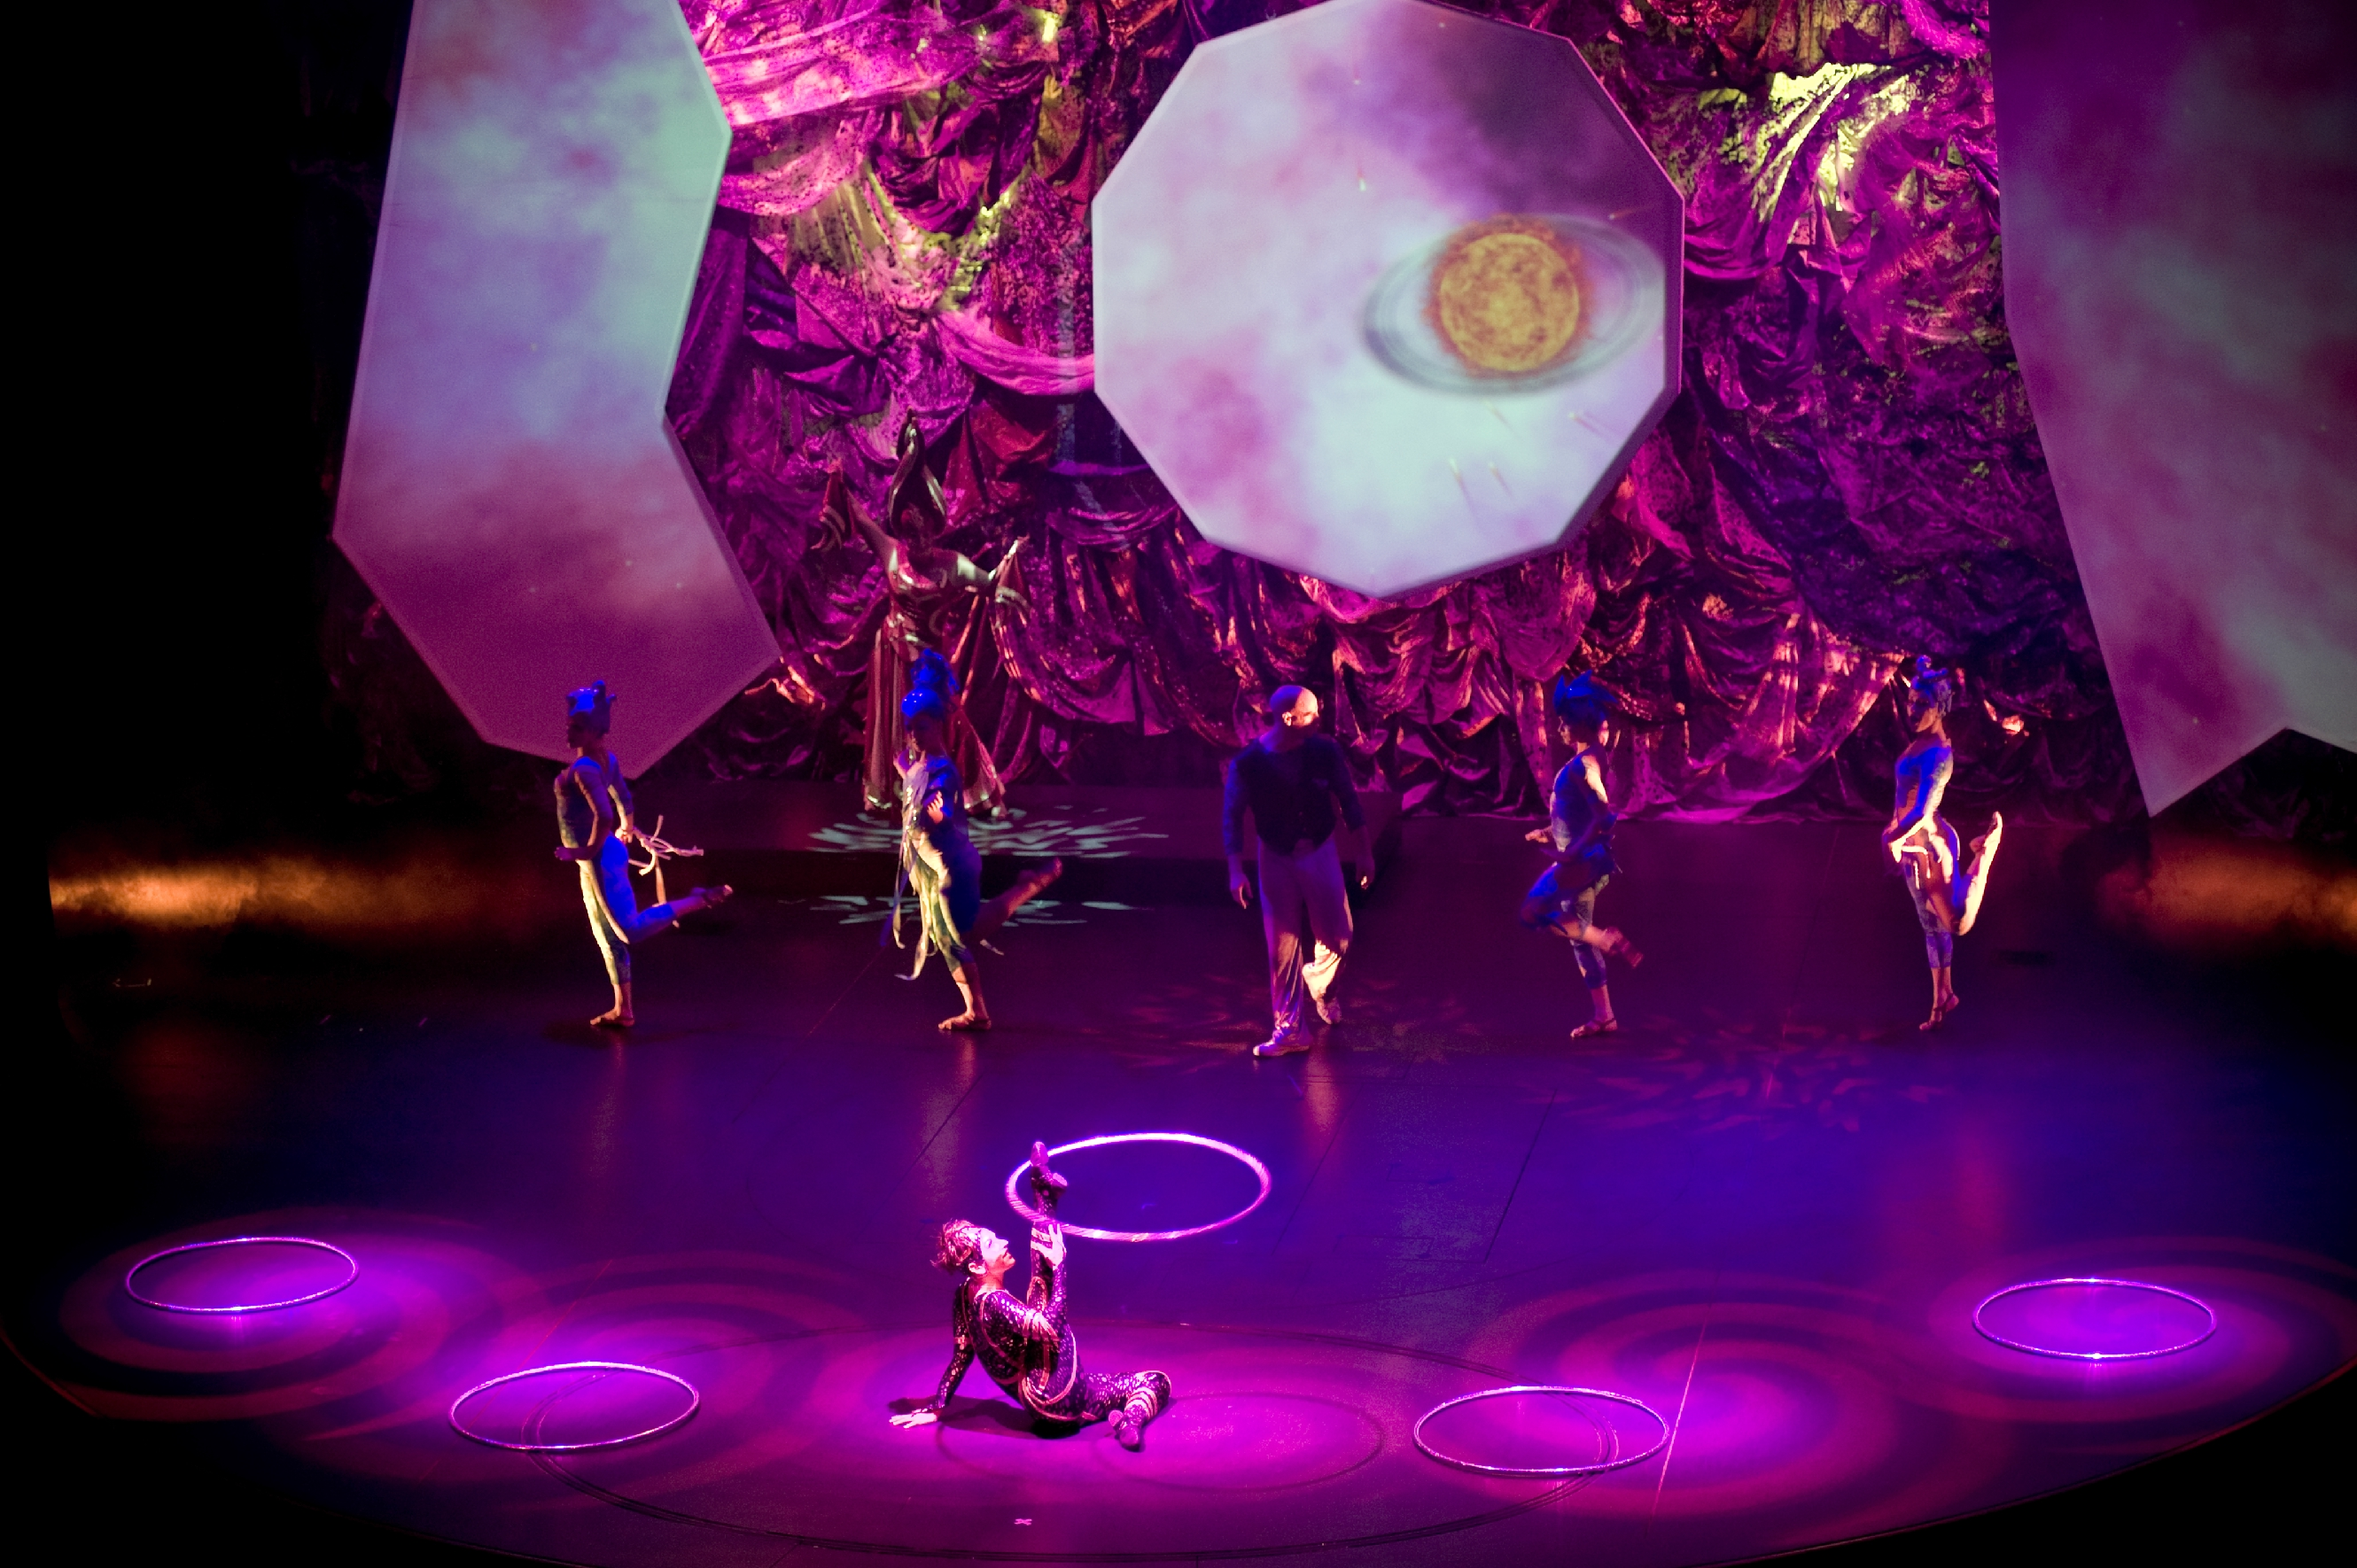 celebrity cruises theatre performance unknown 1.jpg